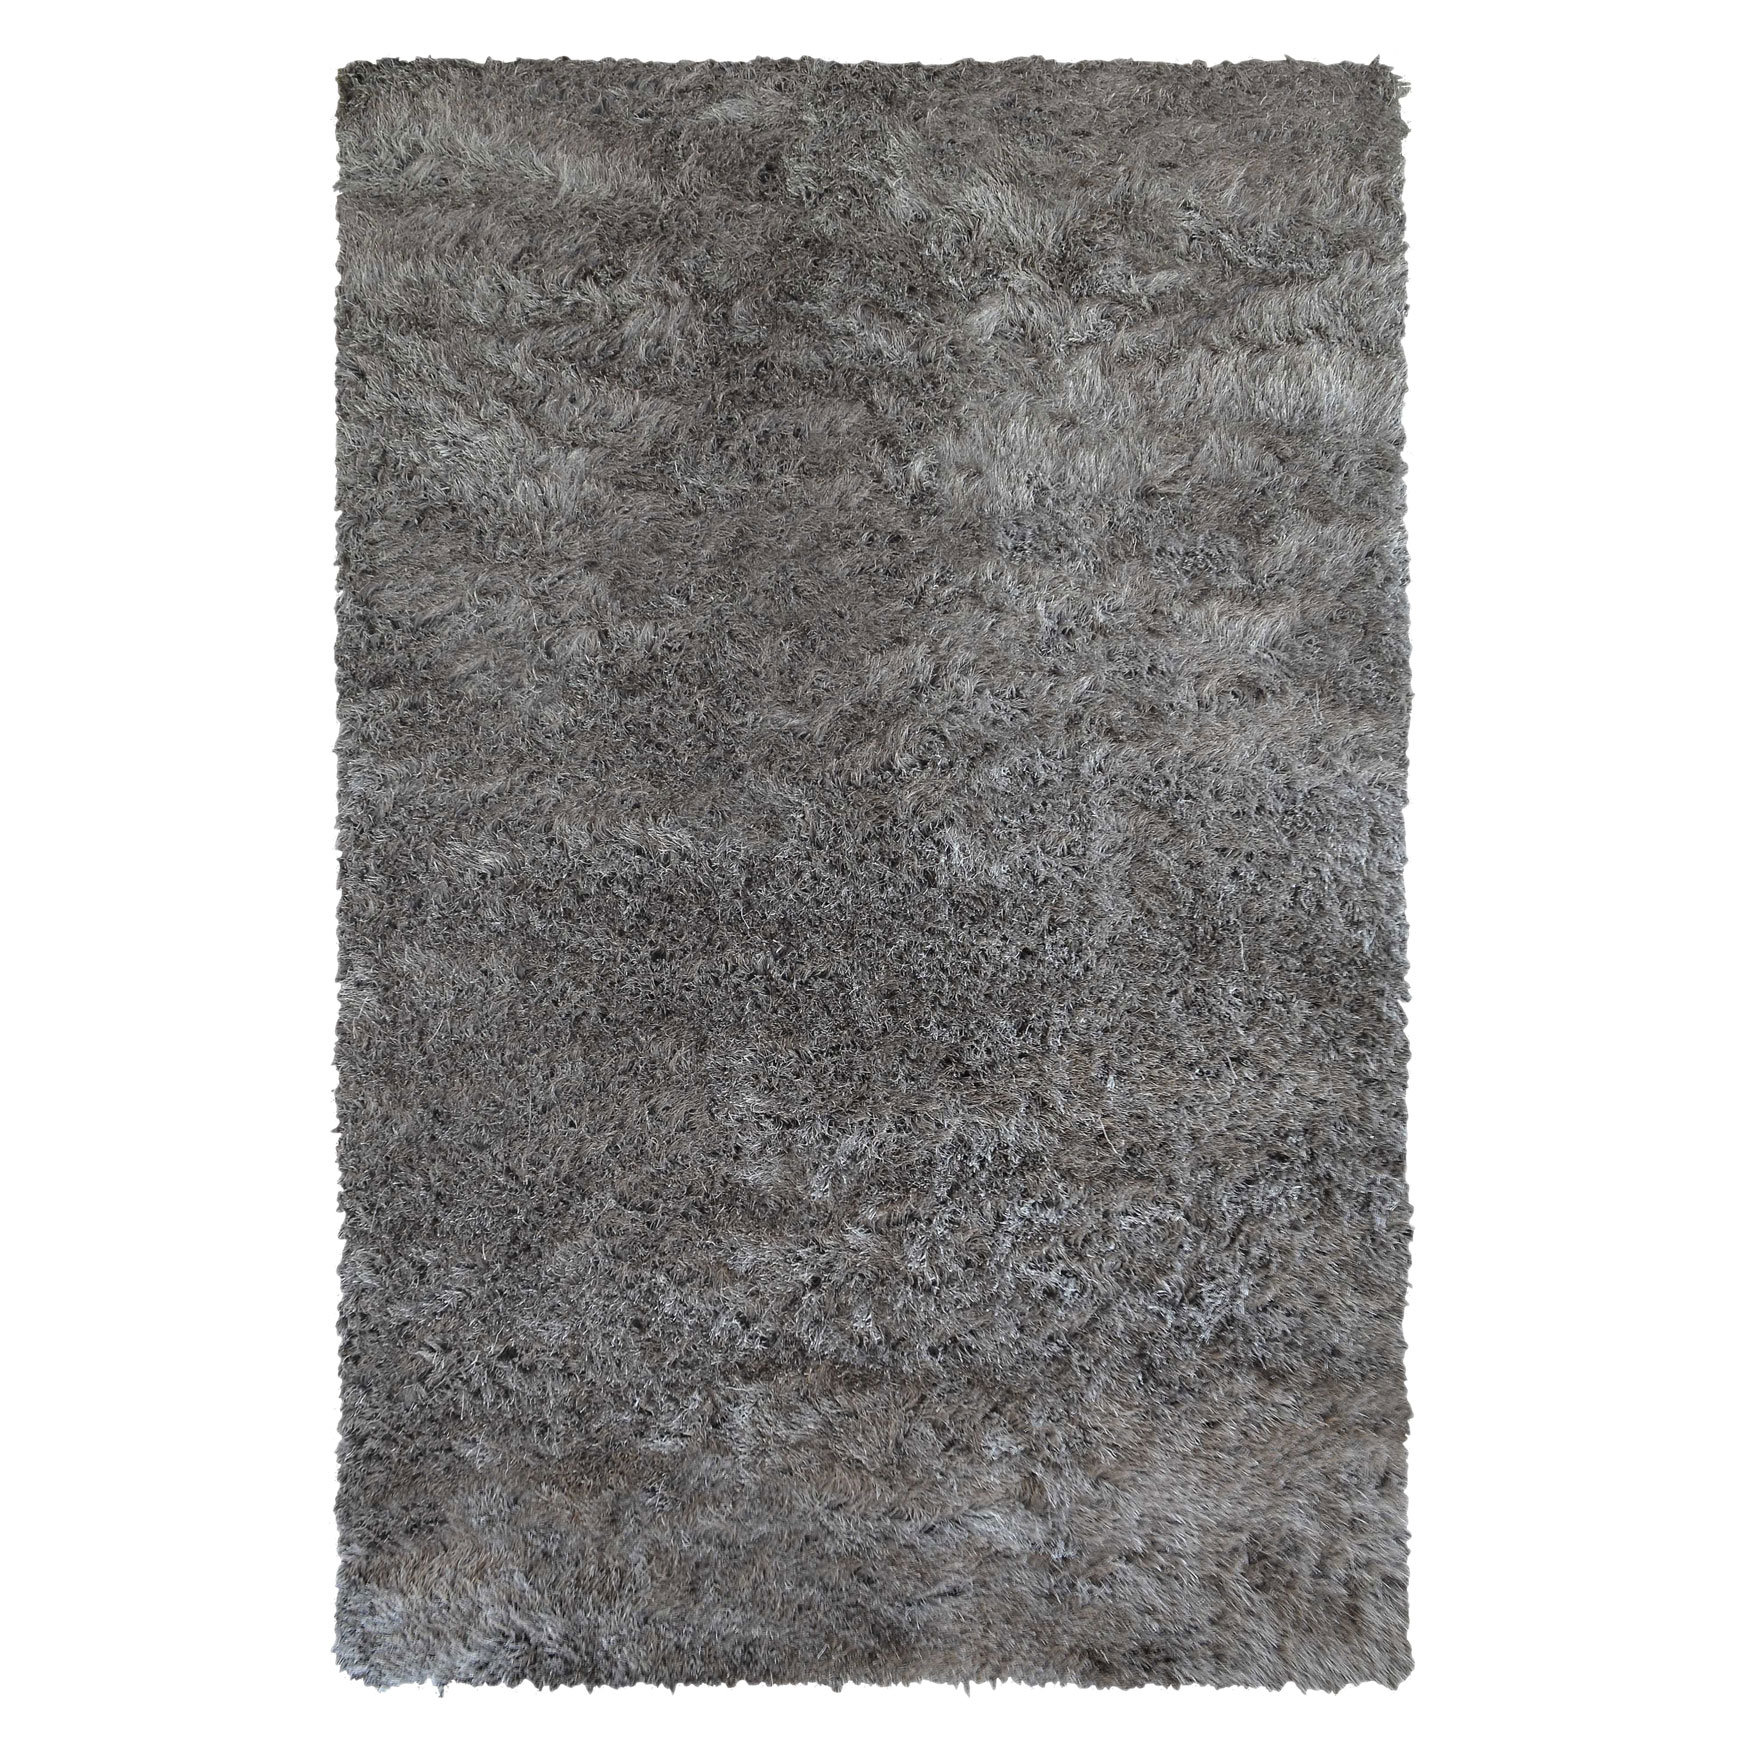 Small Soft Highpile Shag Rug,